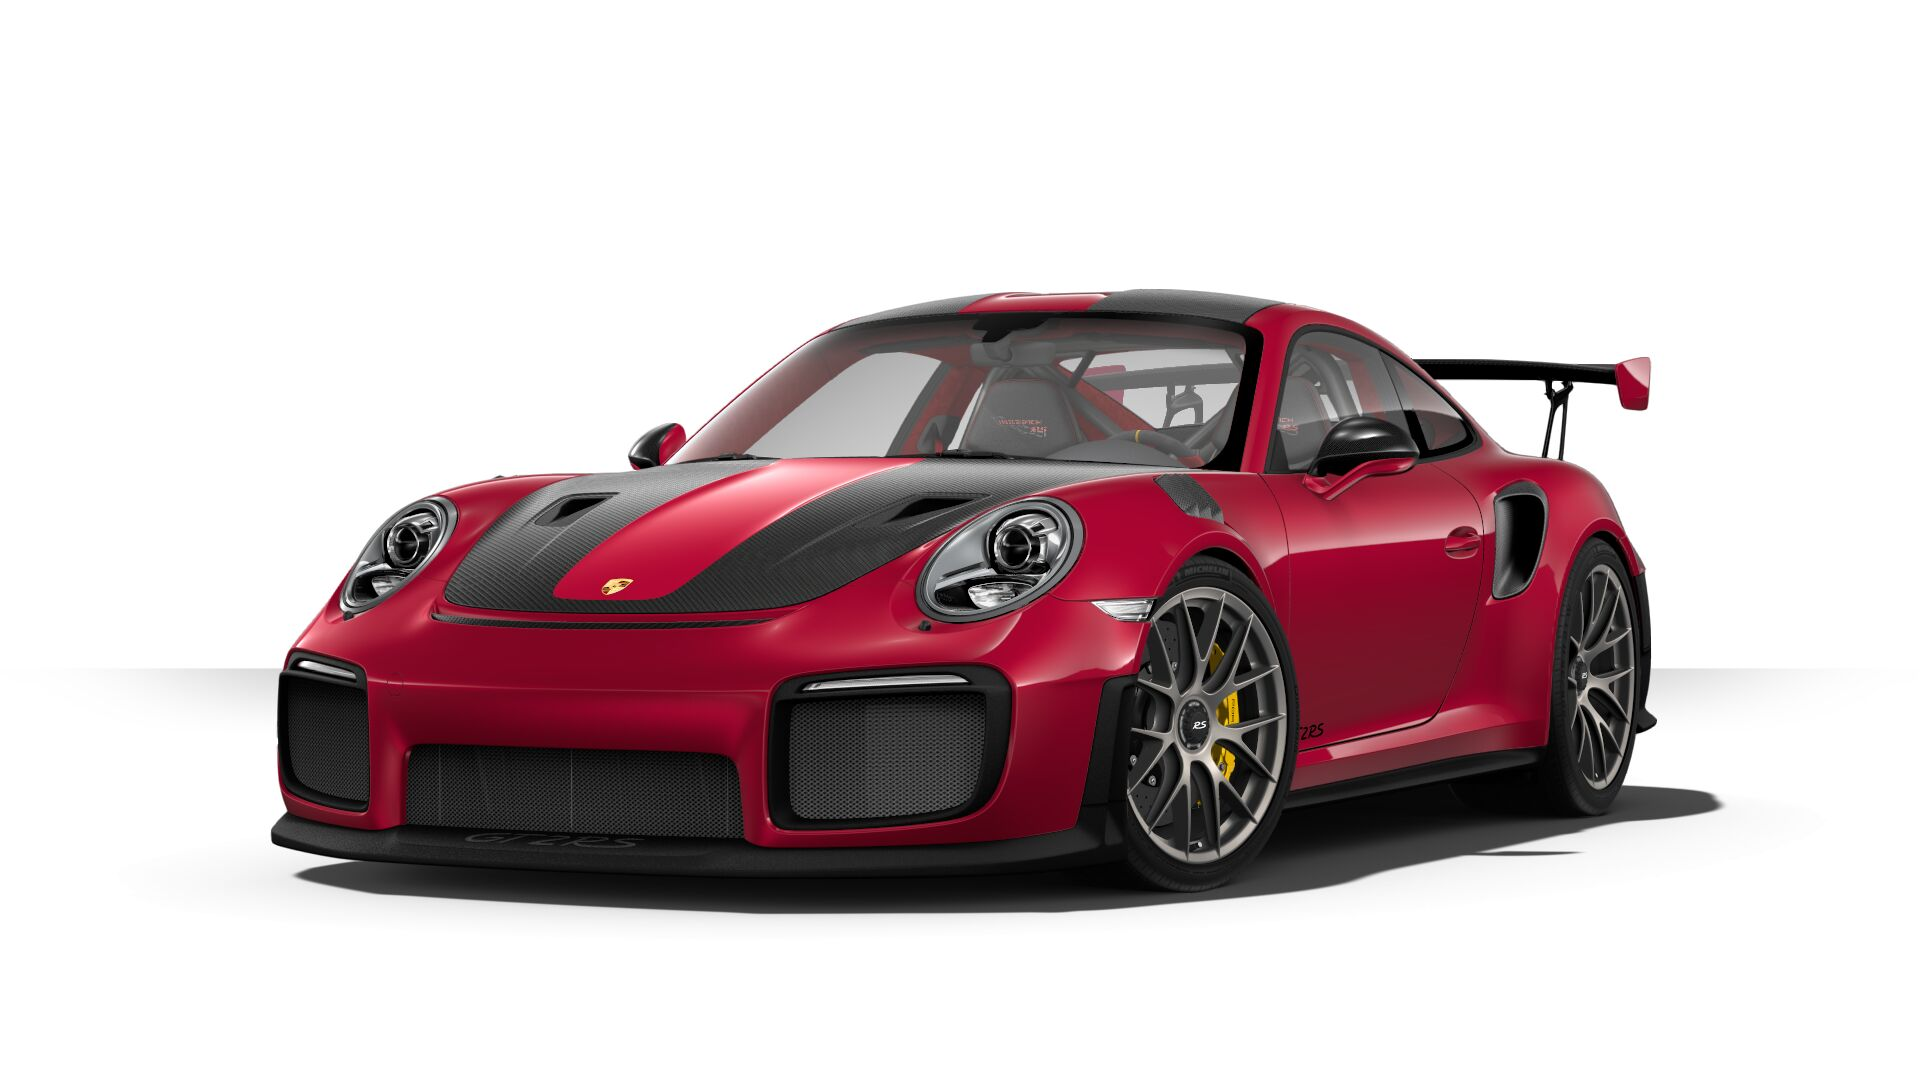 pts porsche 911 gt2 rs weissach jan 2019 delivery supercars for sale. Black Bedroom Furniture Sets. Home Design Ideas